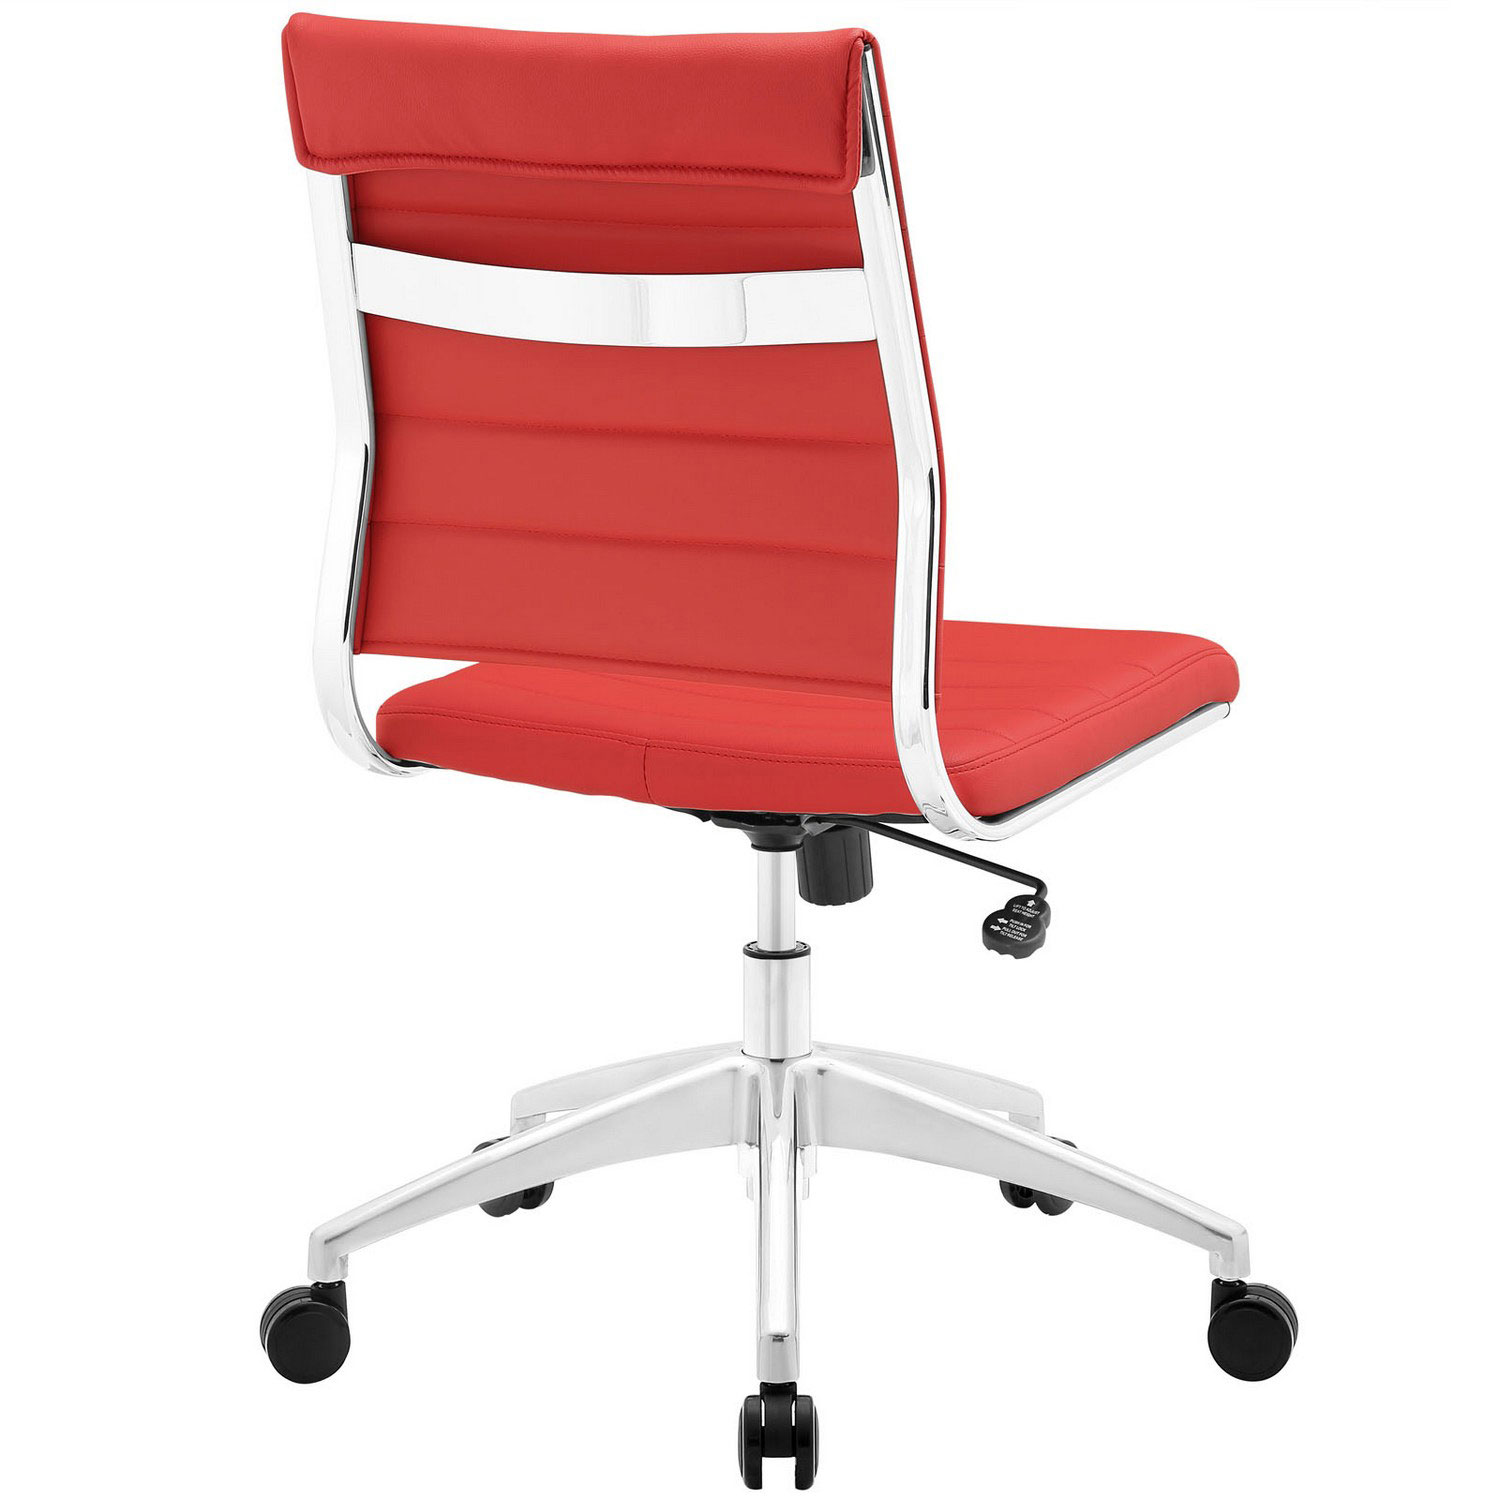 Modway Jive Armless Mid Back Office Chair - Red